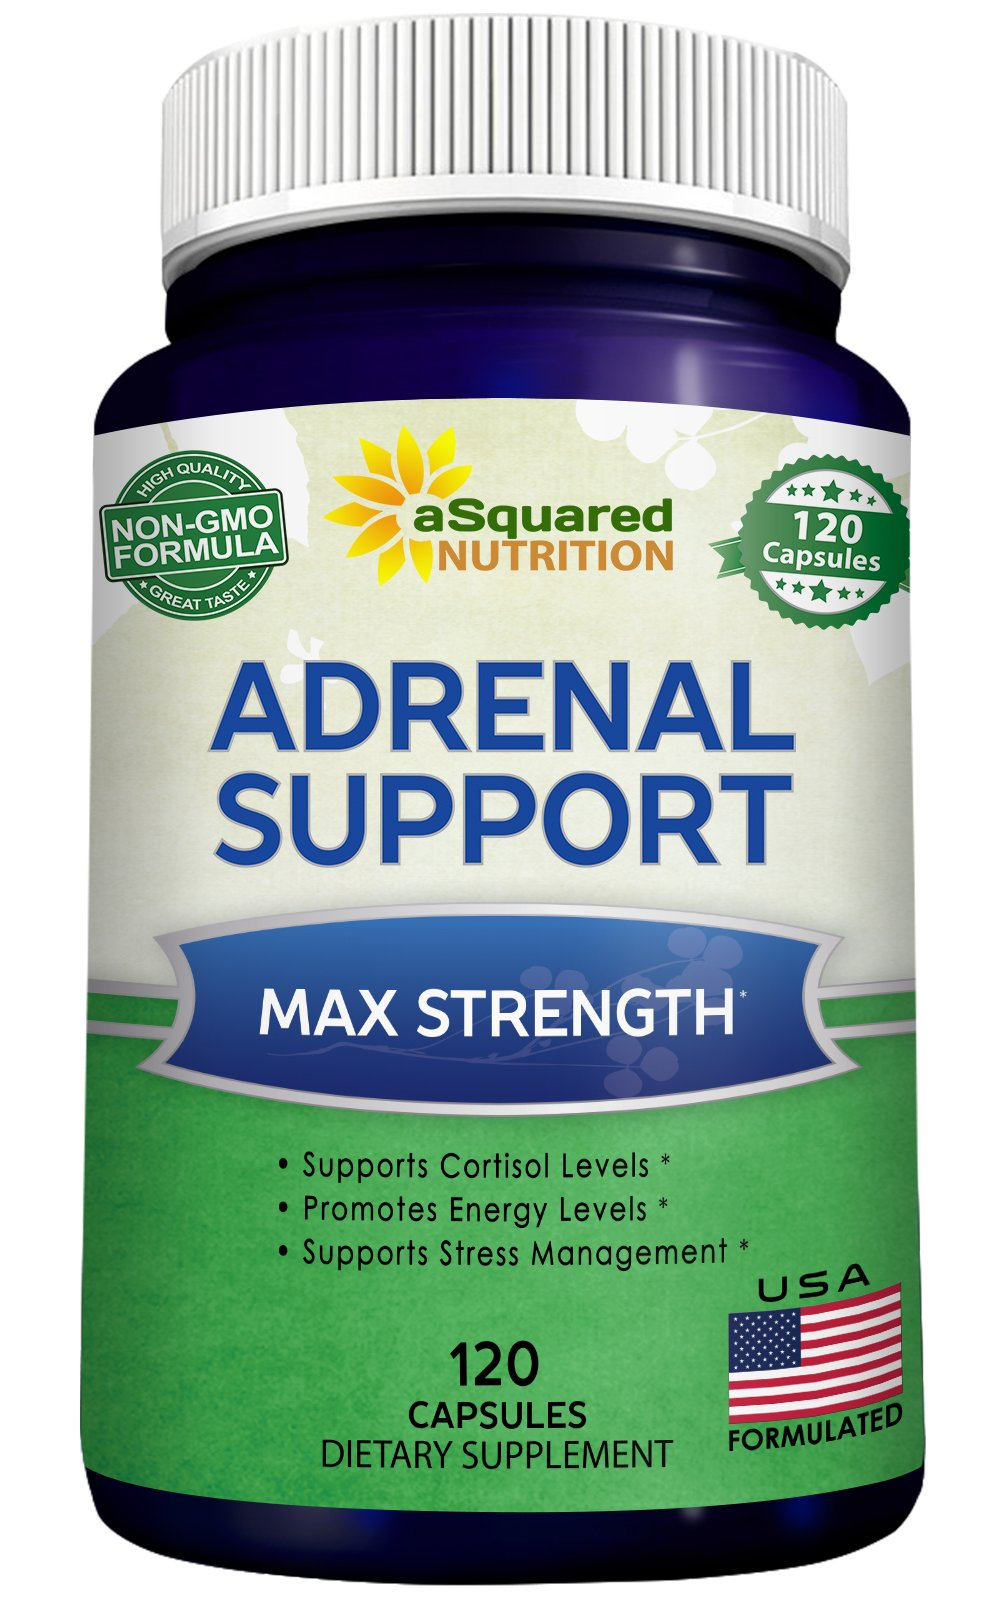 Adrenal Support & Cortisol Manager Supplement (120 Capsules) - Adrenal Health Complex Pills to Support Fatigue, Cortisol Levels & Calm Stress Relief - Ashwagandha, L-Tyrosine, Rhodiola & Ginseng